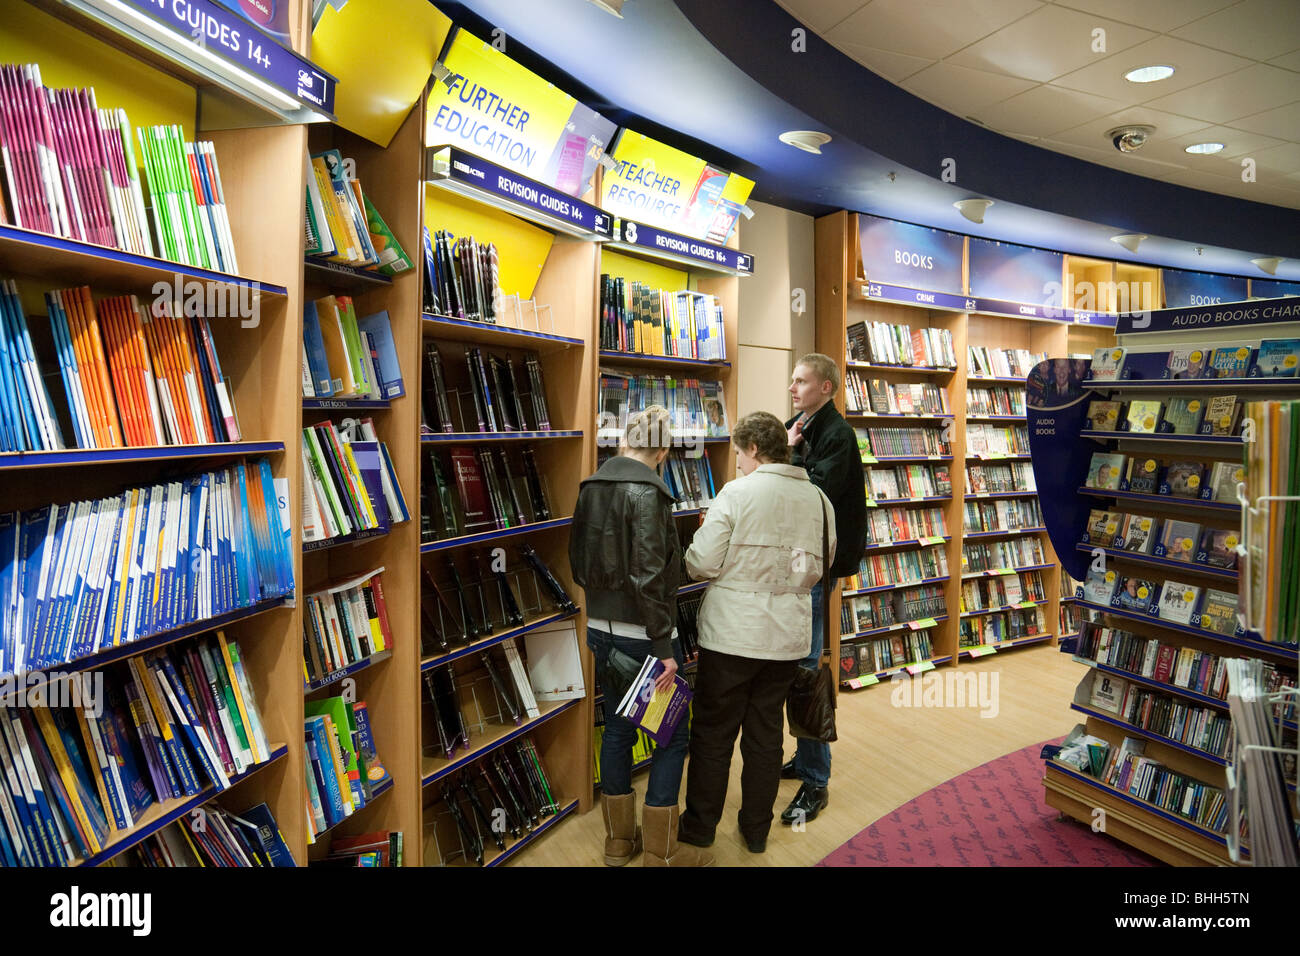 Customers looking at Educational Books, WH Smiths bookstore, Bluewater Shopping Mall, Kent UK - Stock Image